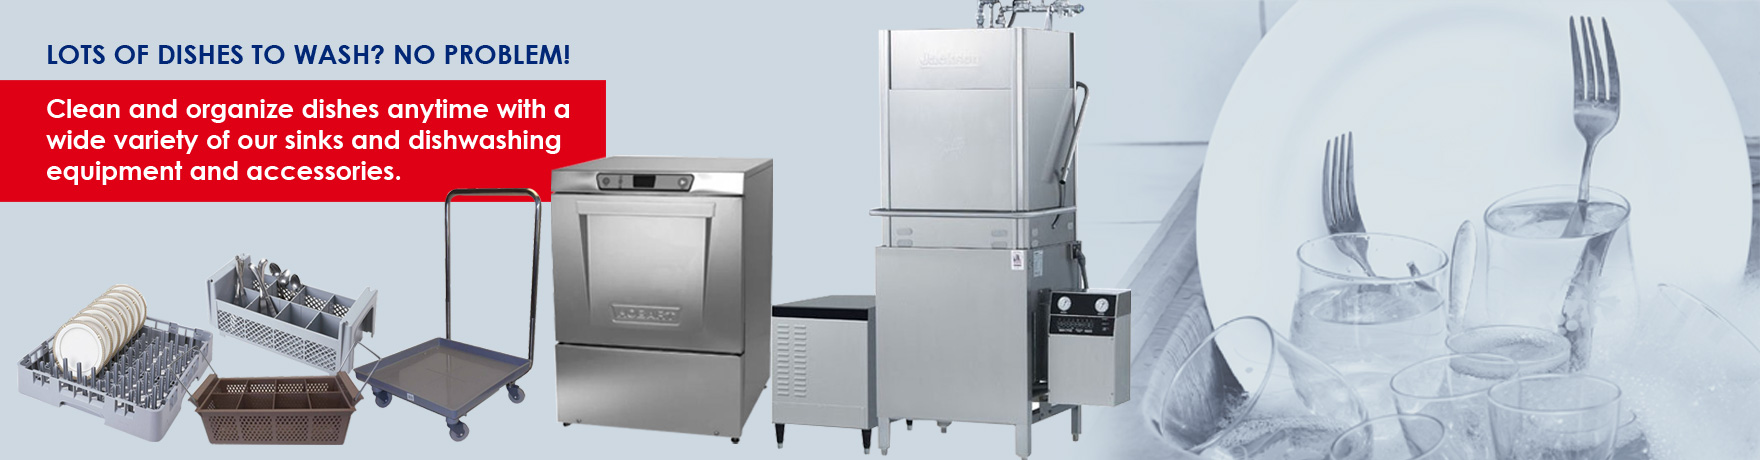 Commercial Dishwasher Equipment